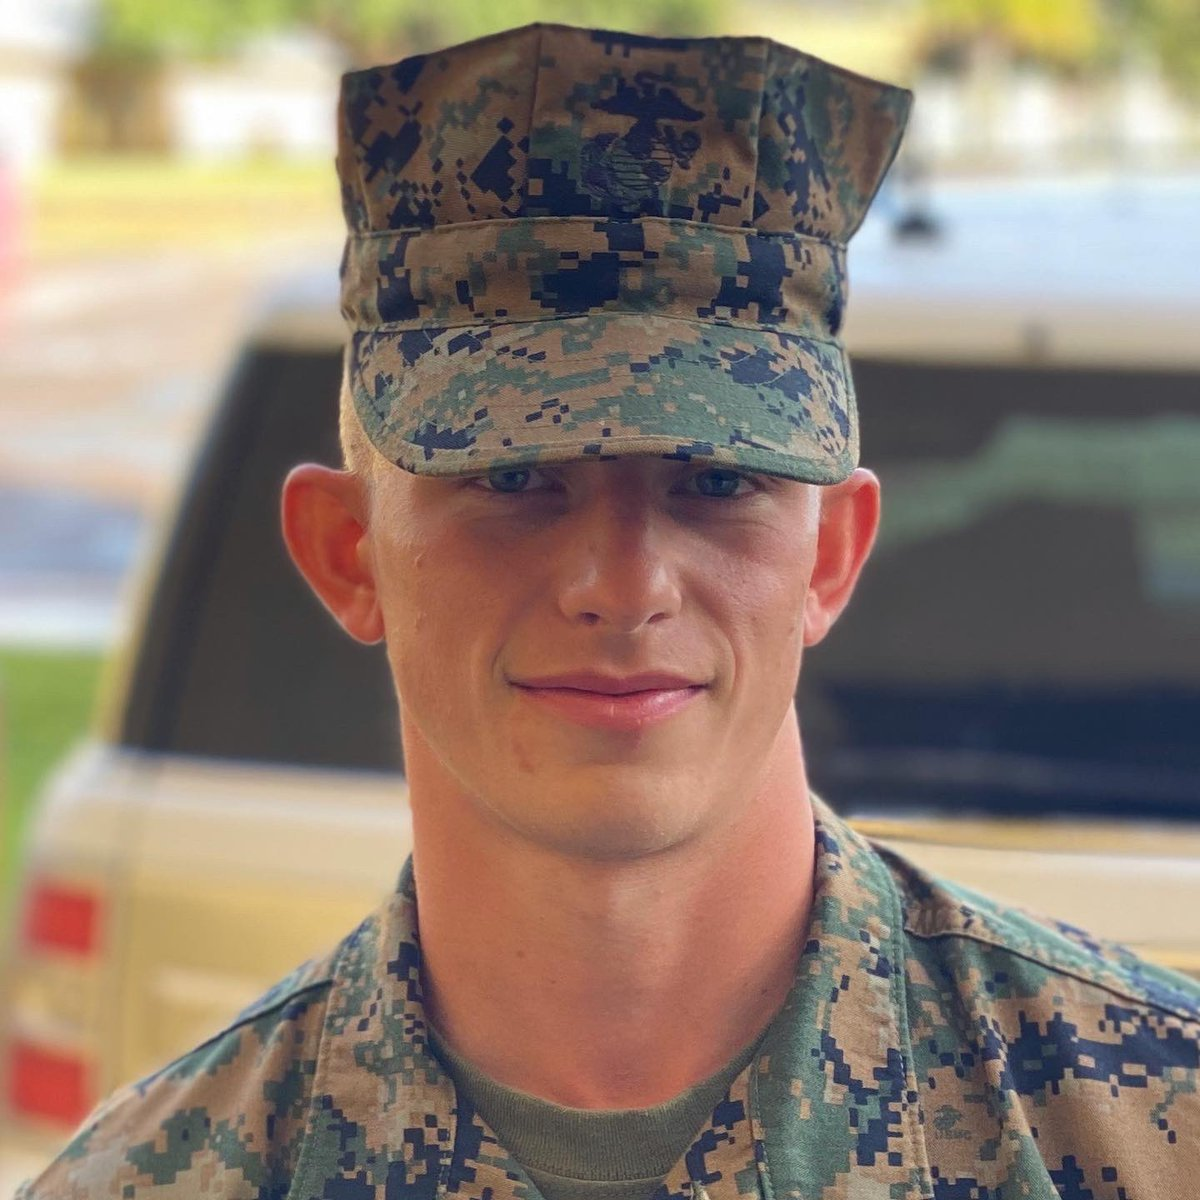 Today my youngest son Hayden graduated MCRD becoming another 3rd Generation Marine, following myself, my father & my other son.  As squad leader he earned a promotion to PFC.  Congratulations HAYDEN... love you and proud of you, Marine 🙏🏻🇺🇸